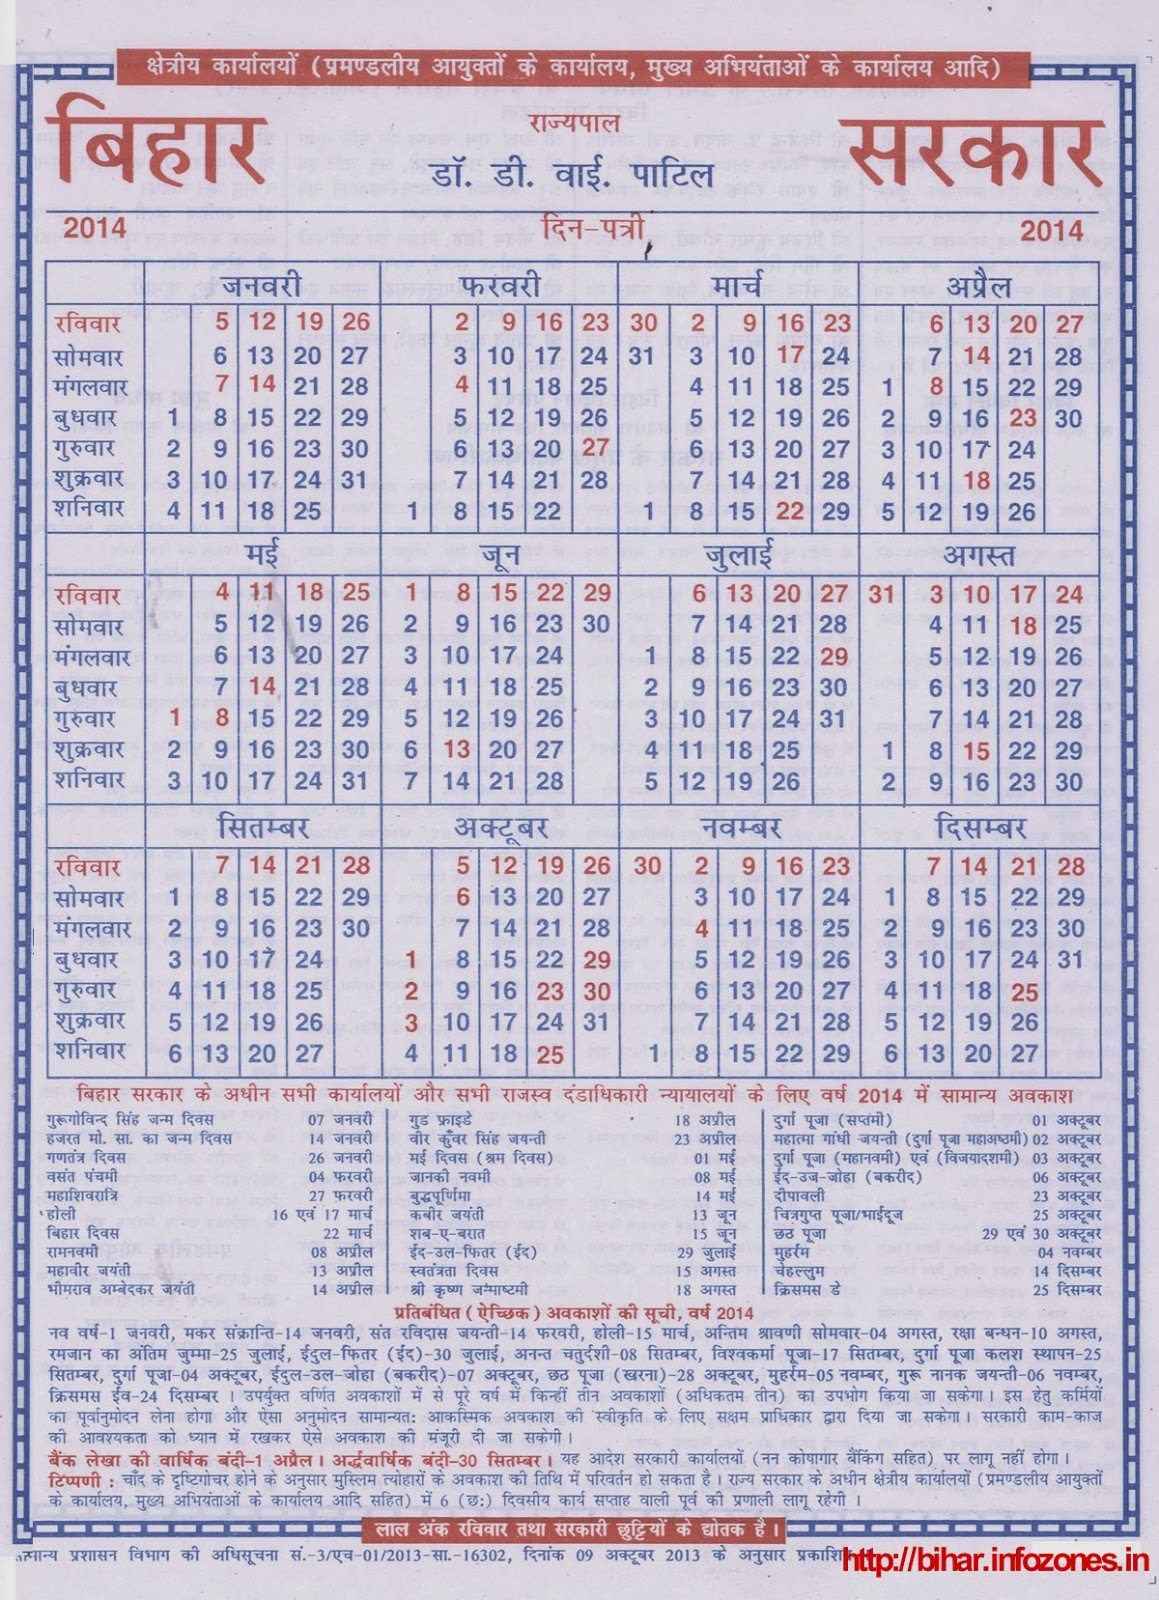 Bihar Government Calendar 2014 for Bihar Government Calendar